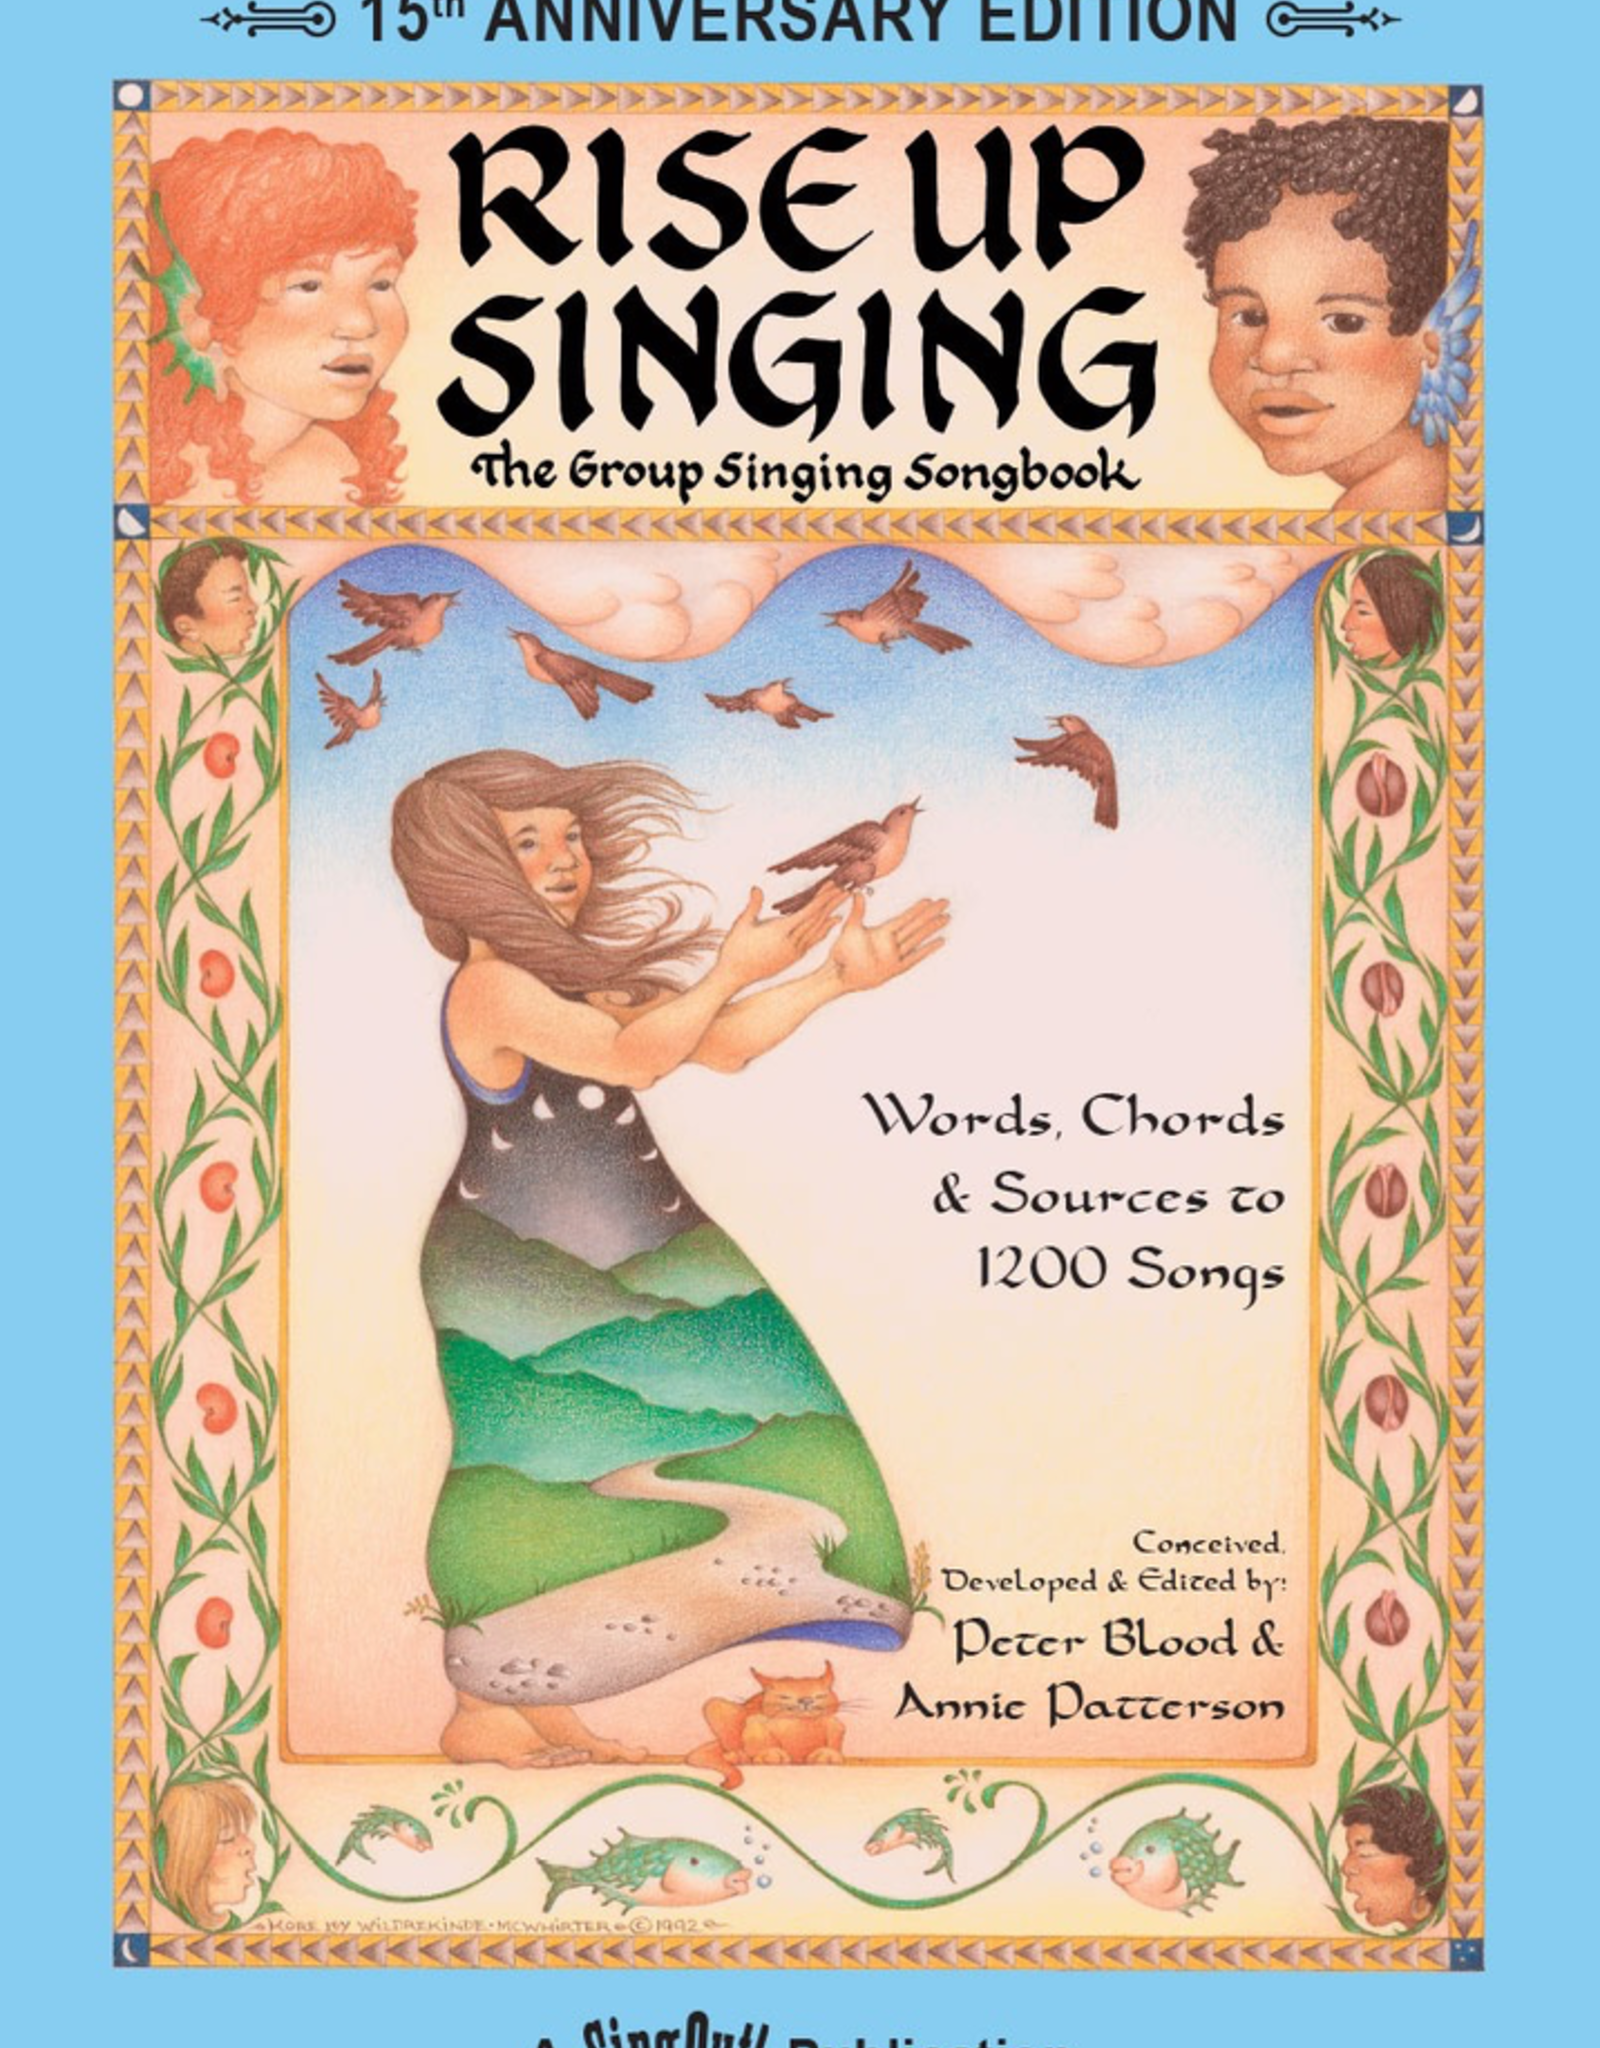 Hal Leonard Hal Leonard: Rise Up Singing — 15th Anniversary Edition